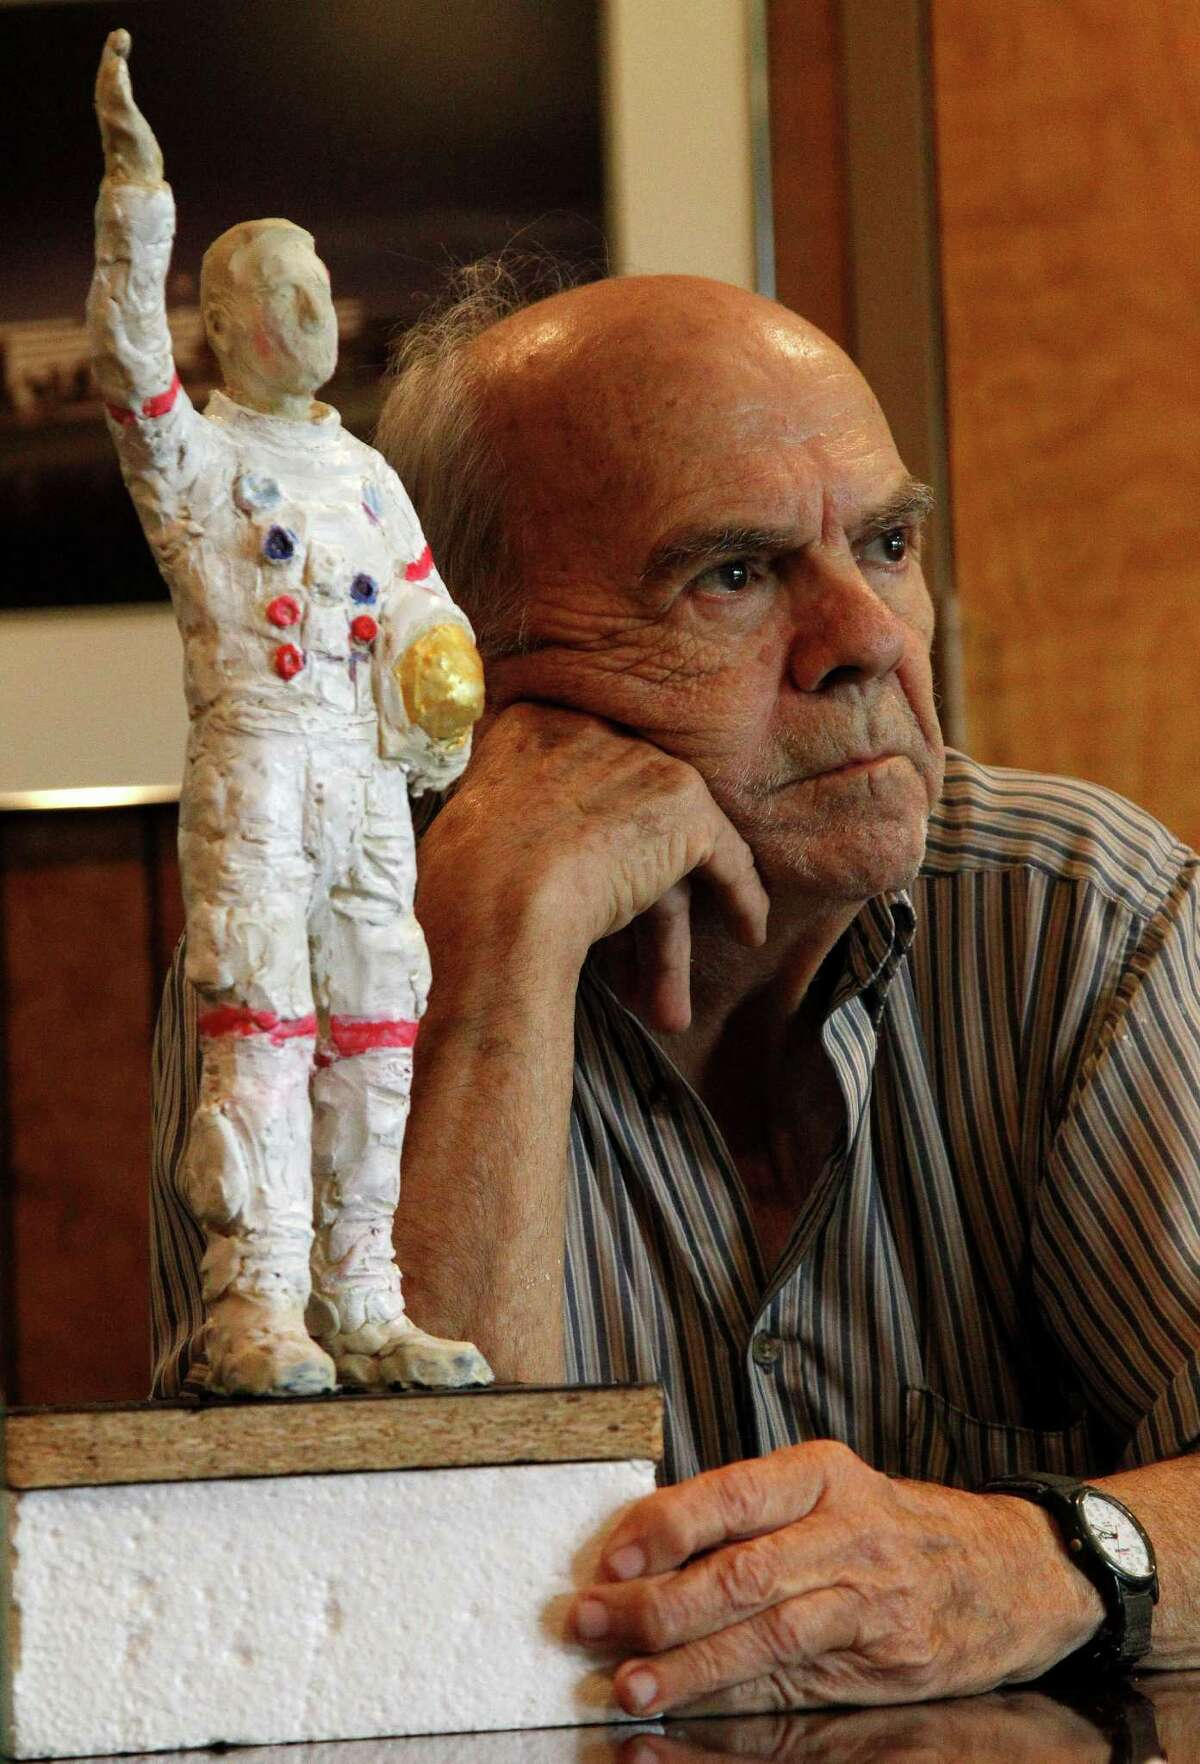 Artist David Adickes is creating a statue of an Apollo astronaut in Webster. He and others discussed the project on Wednesday in Houston. The statue will be 100 feet tall.